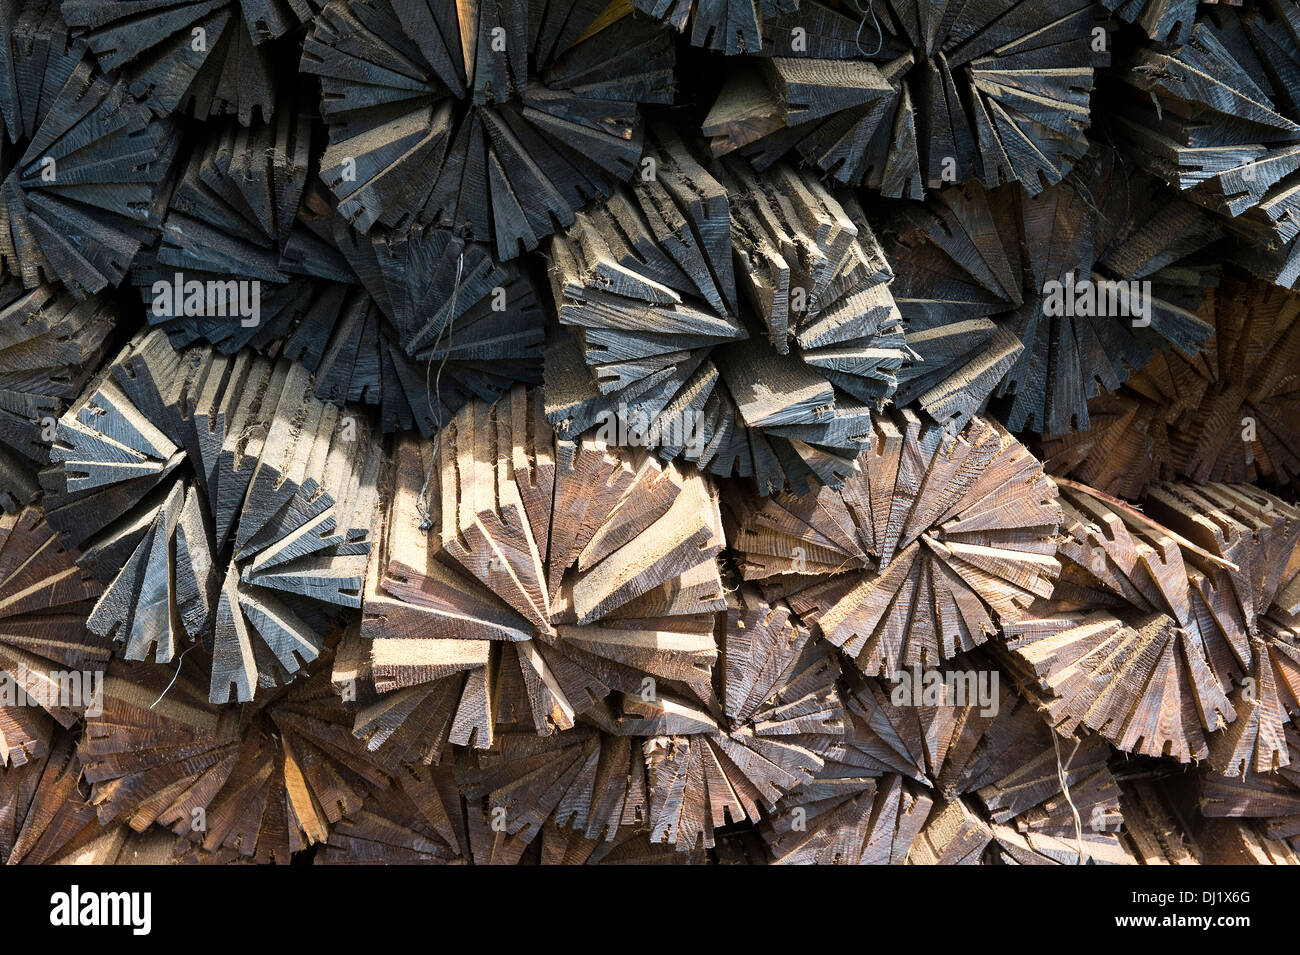 Wooden shingle recycled ready for roof covering Lutowiska Bieszczady Poland Europe - Stock Image